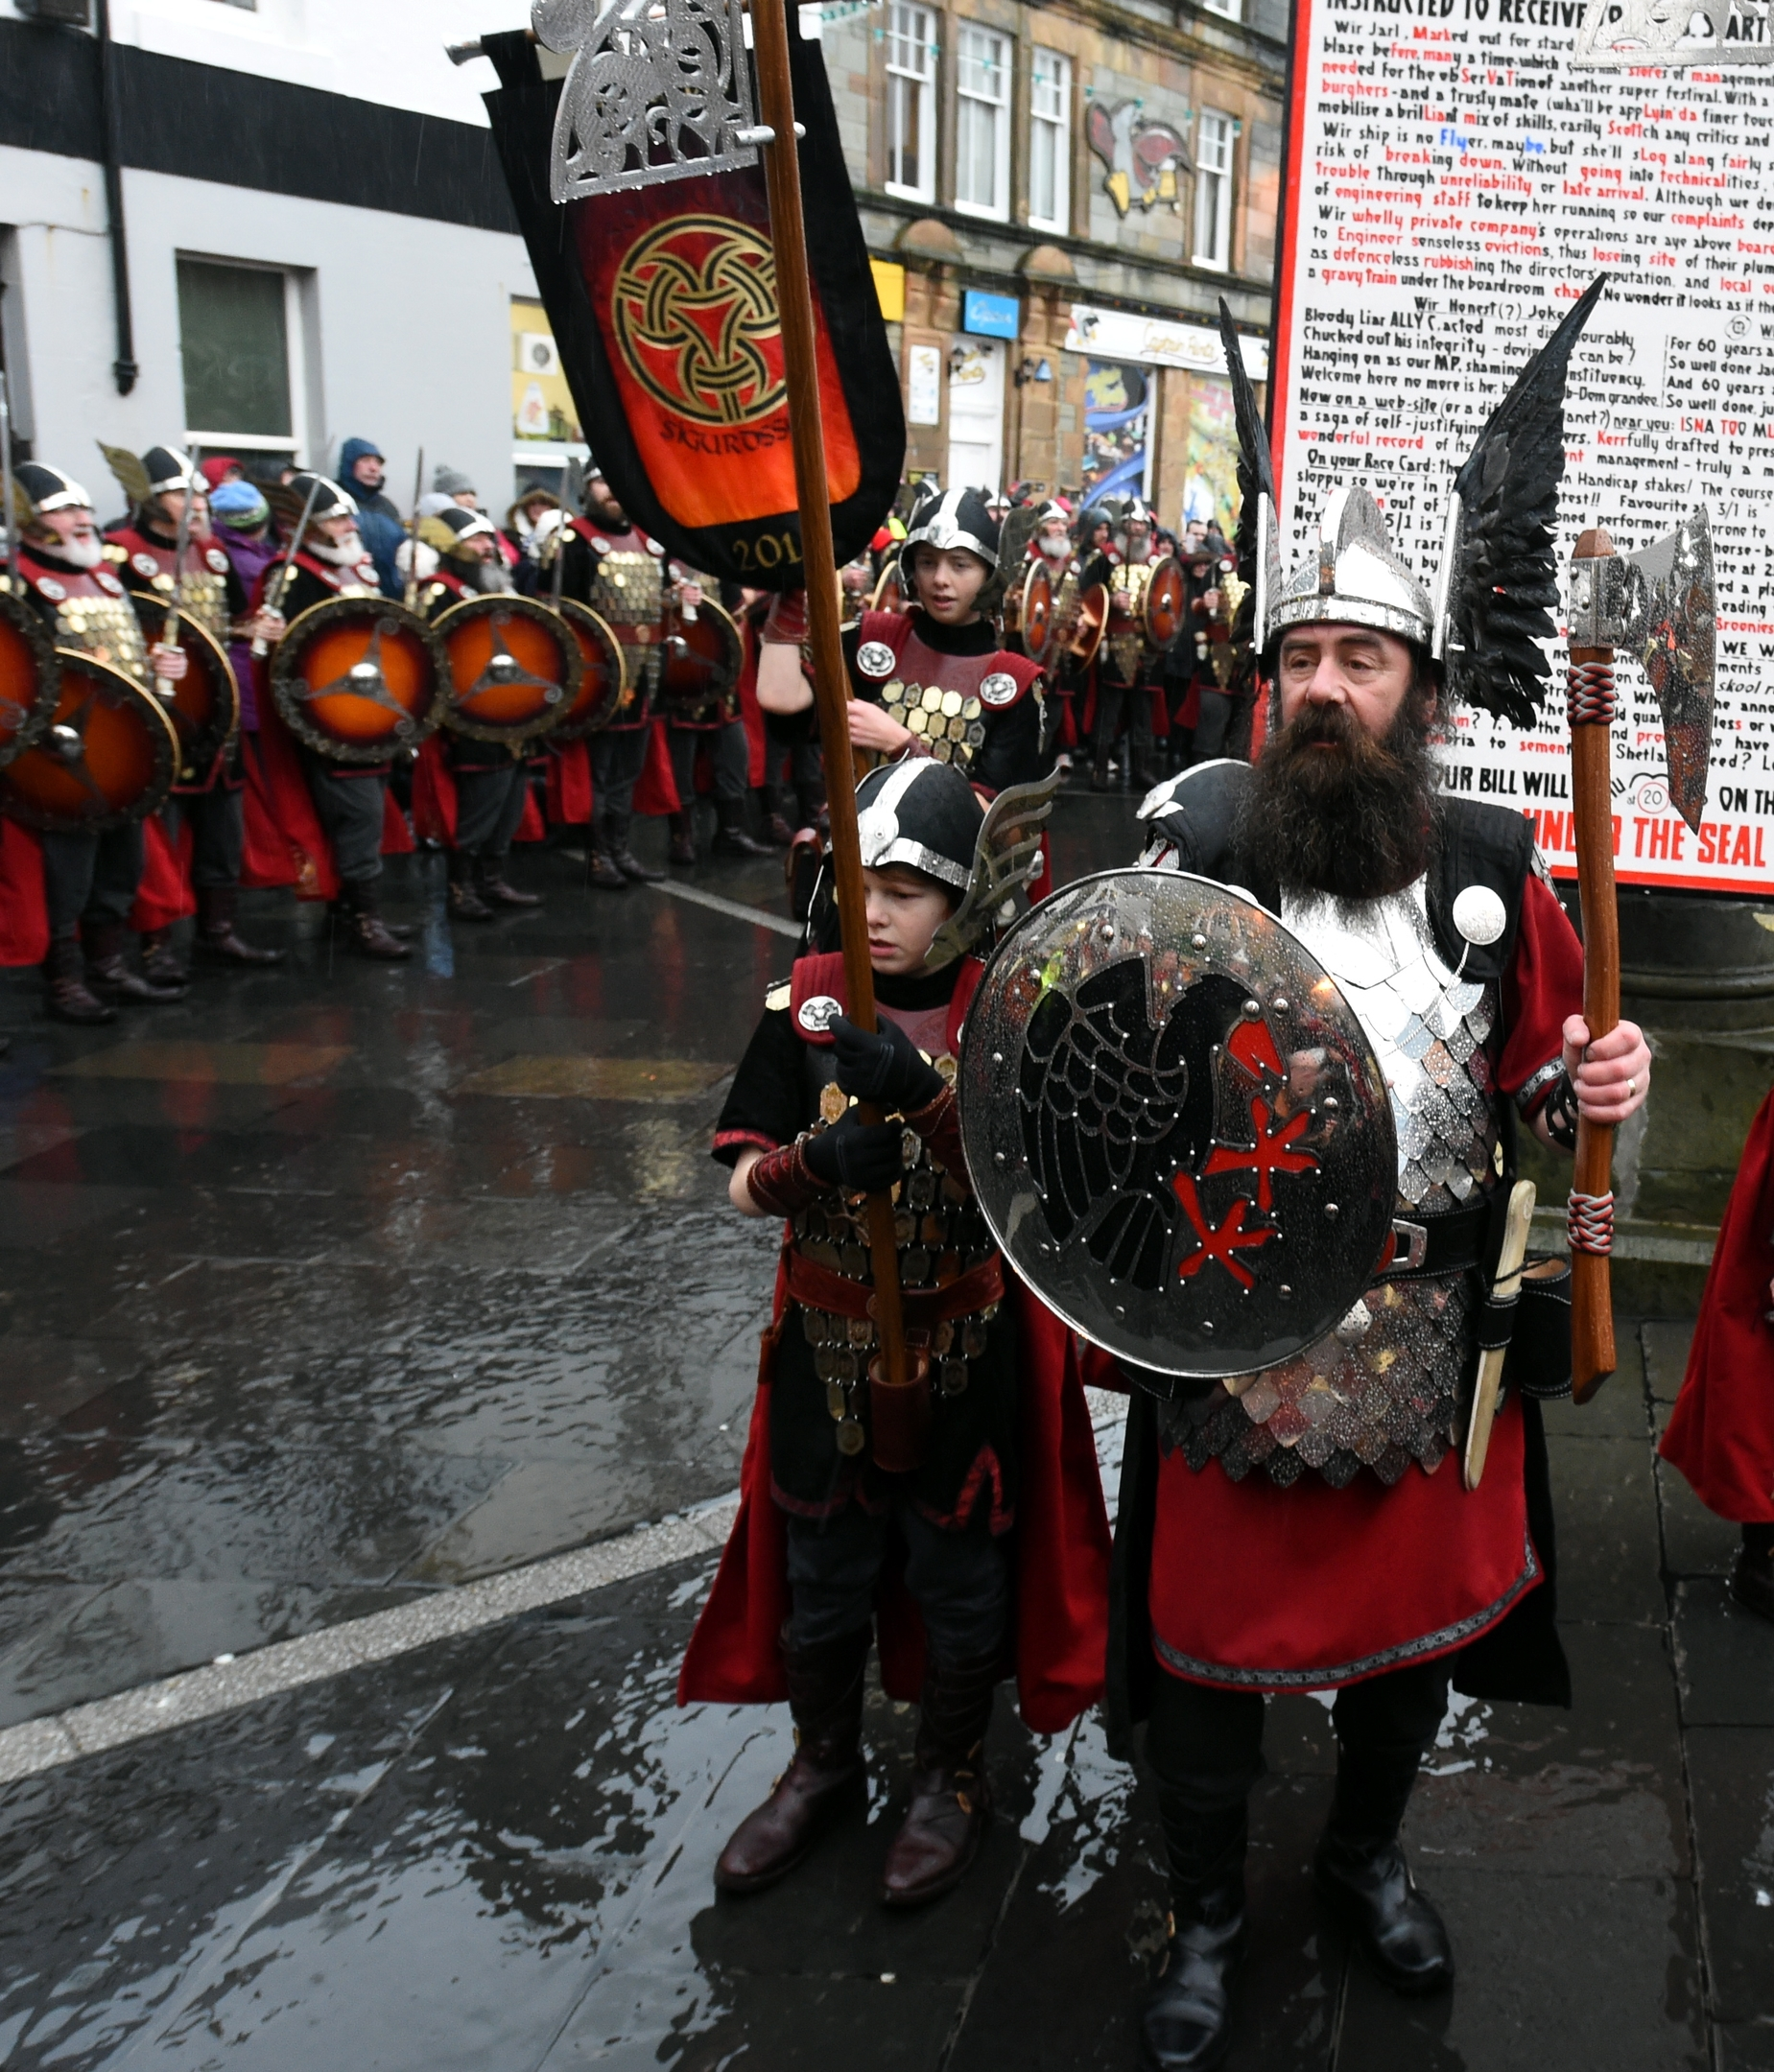 Up Helly Aa, Lerwick, Shetland. The morning march in Lerwick. Picture by Jim Irvine 26-1-16